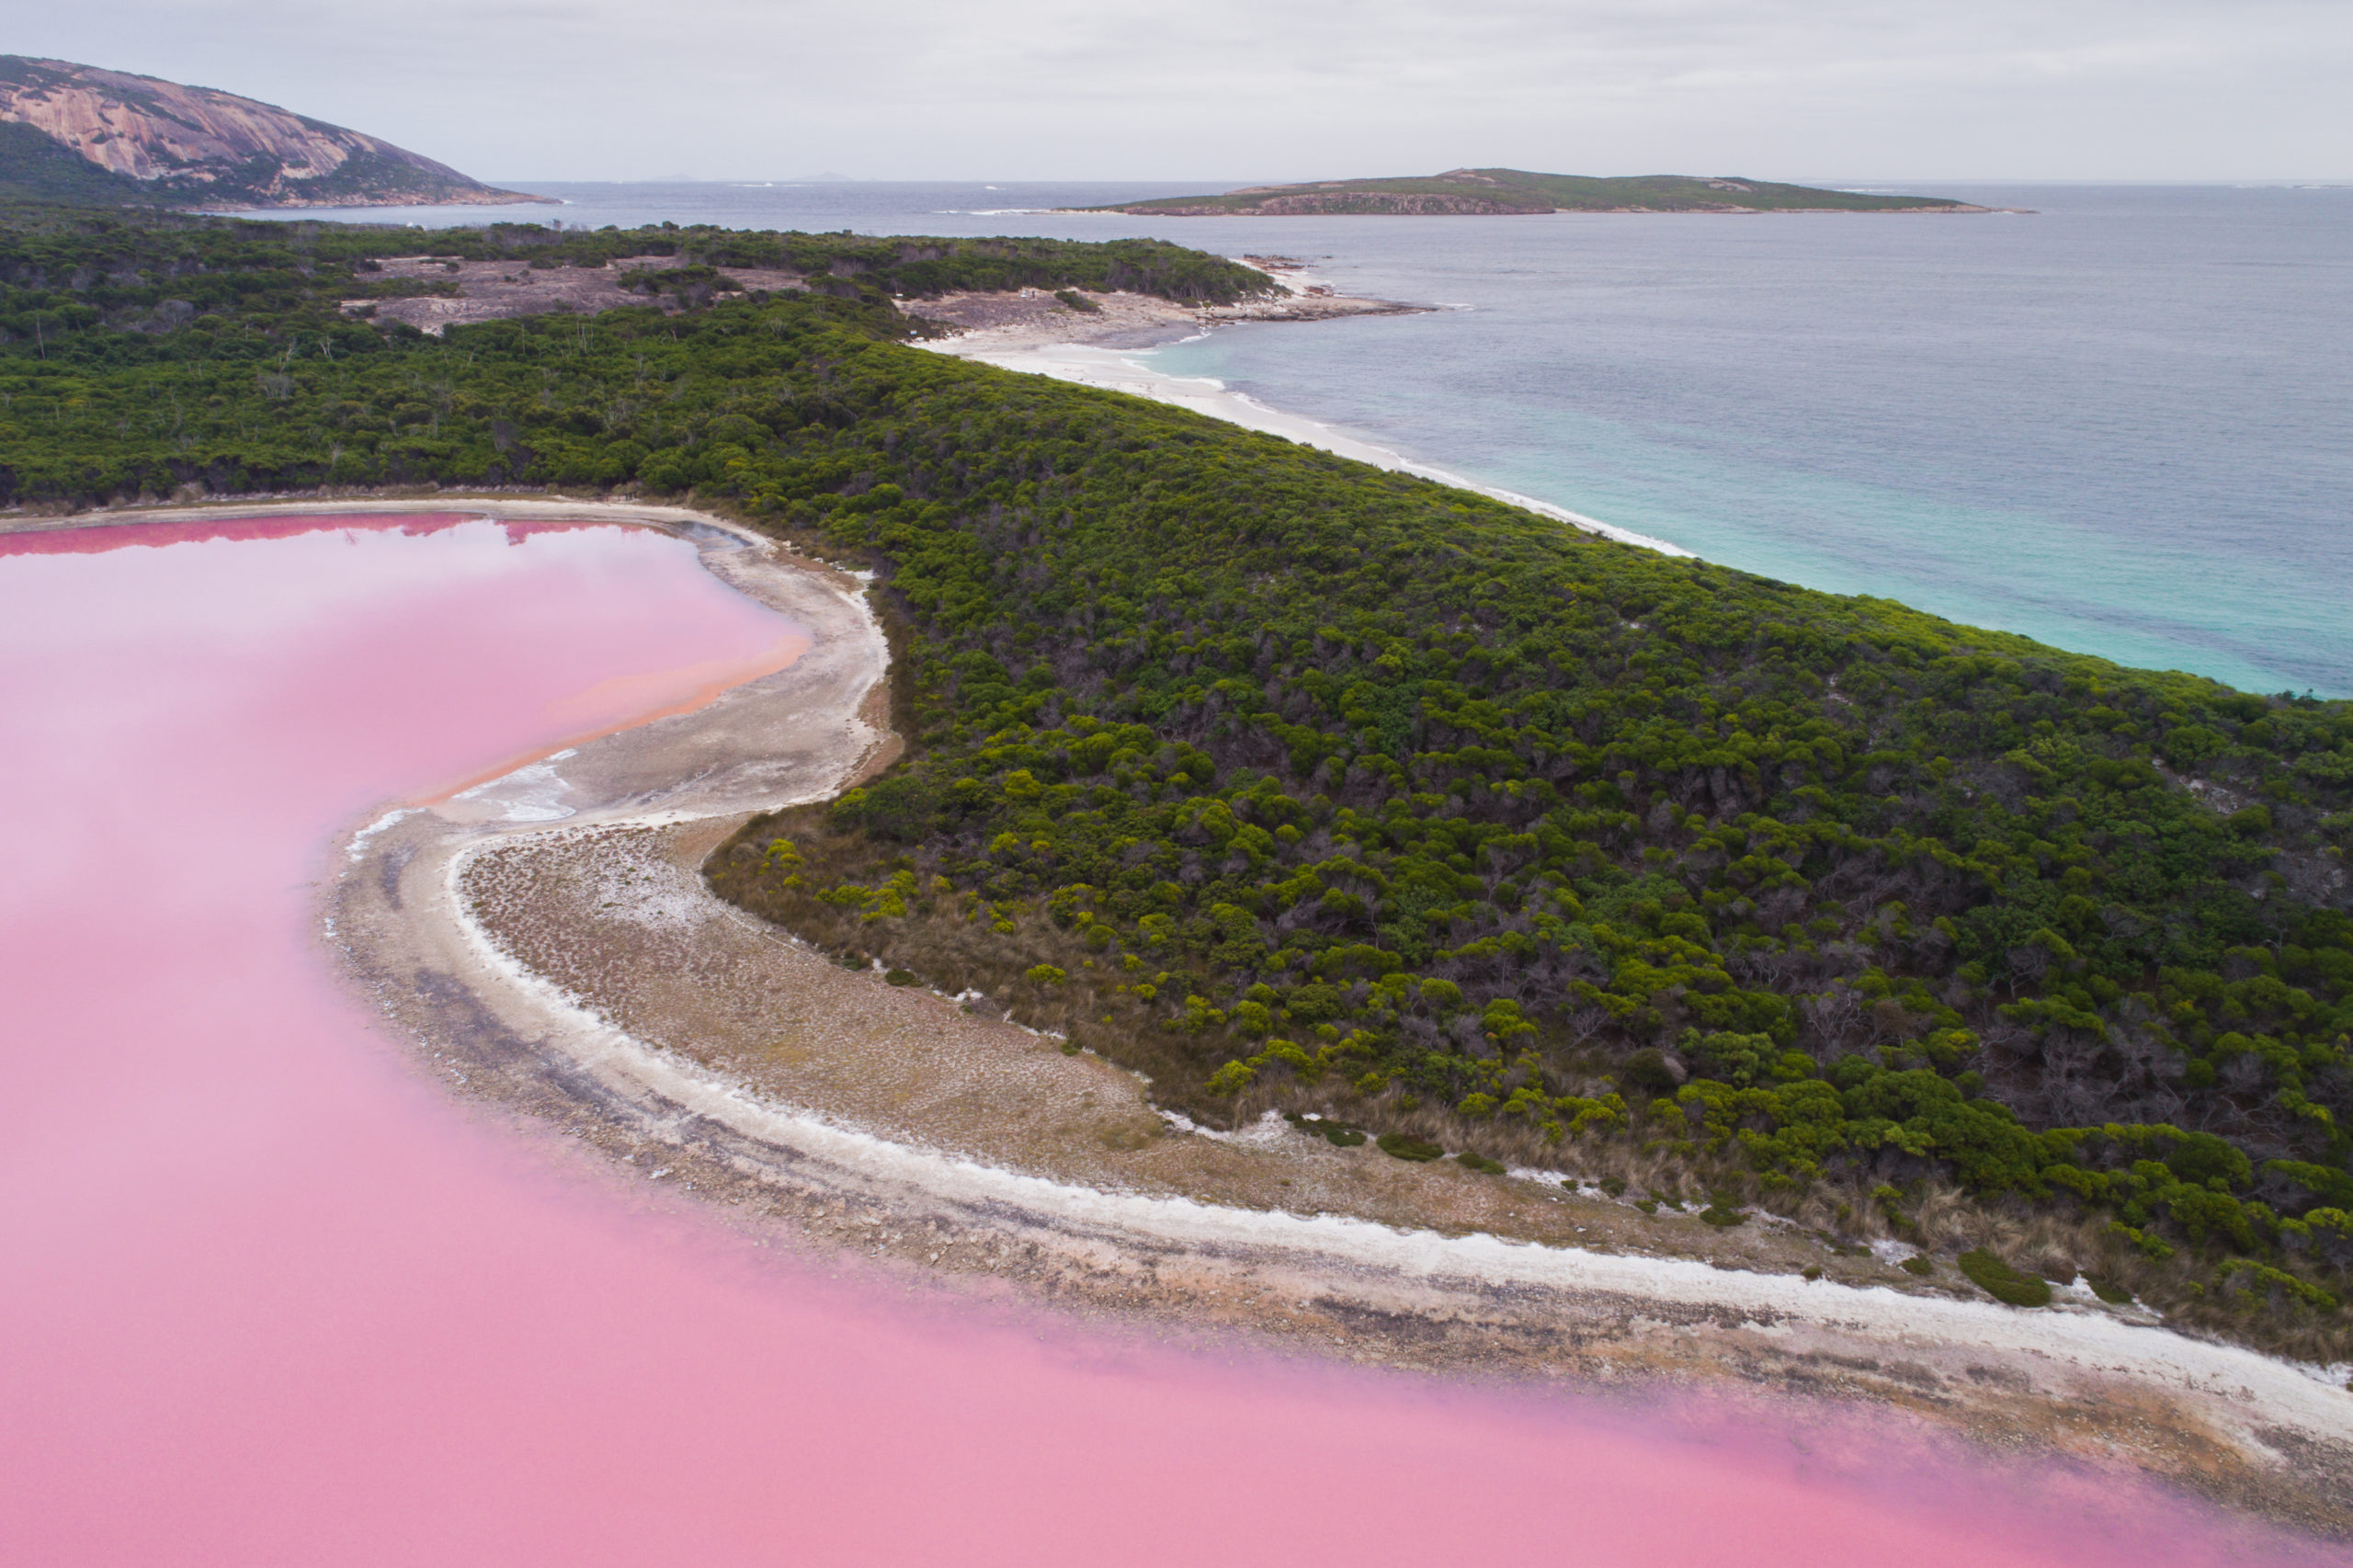 A drone image of a pink salt lake next to green bushland and the ocean